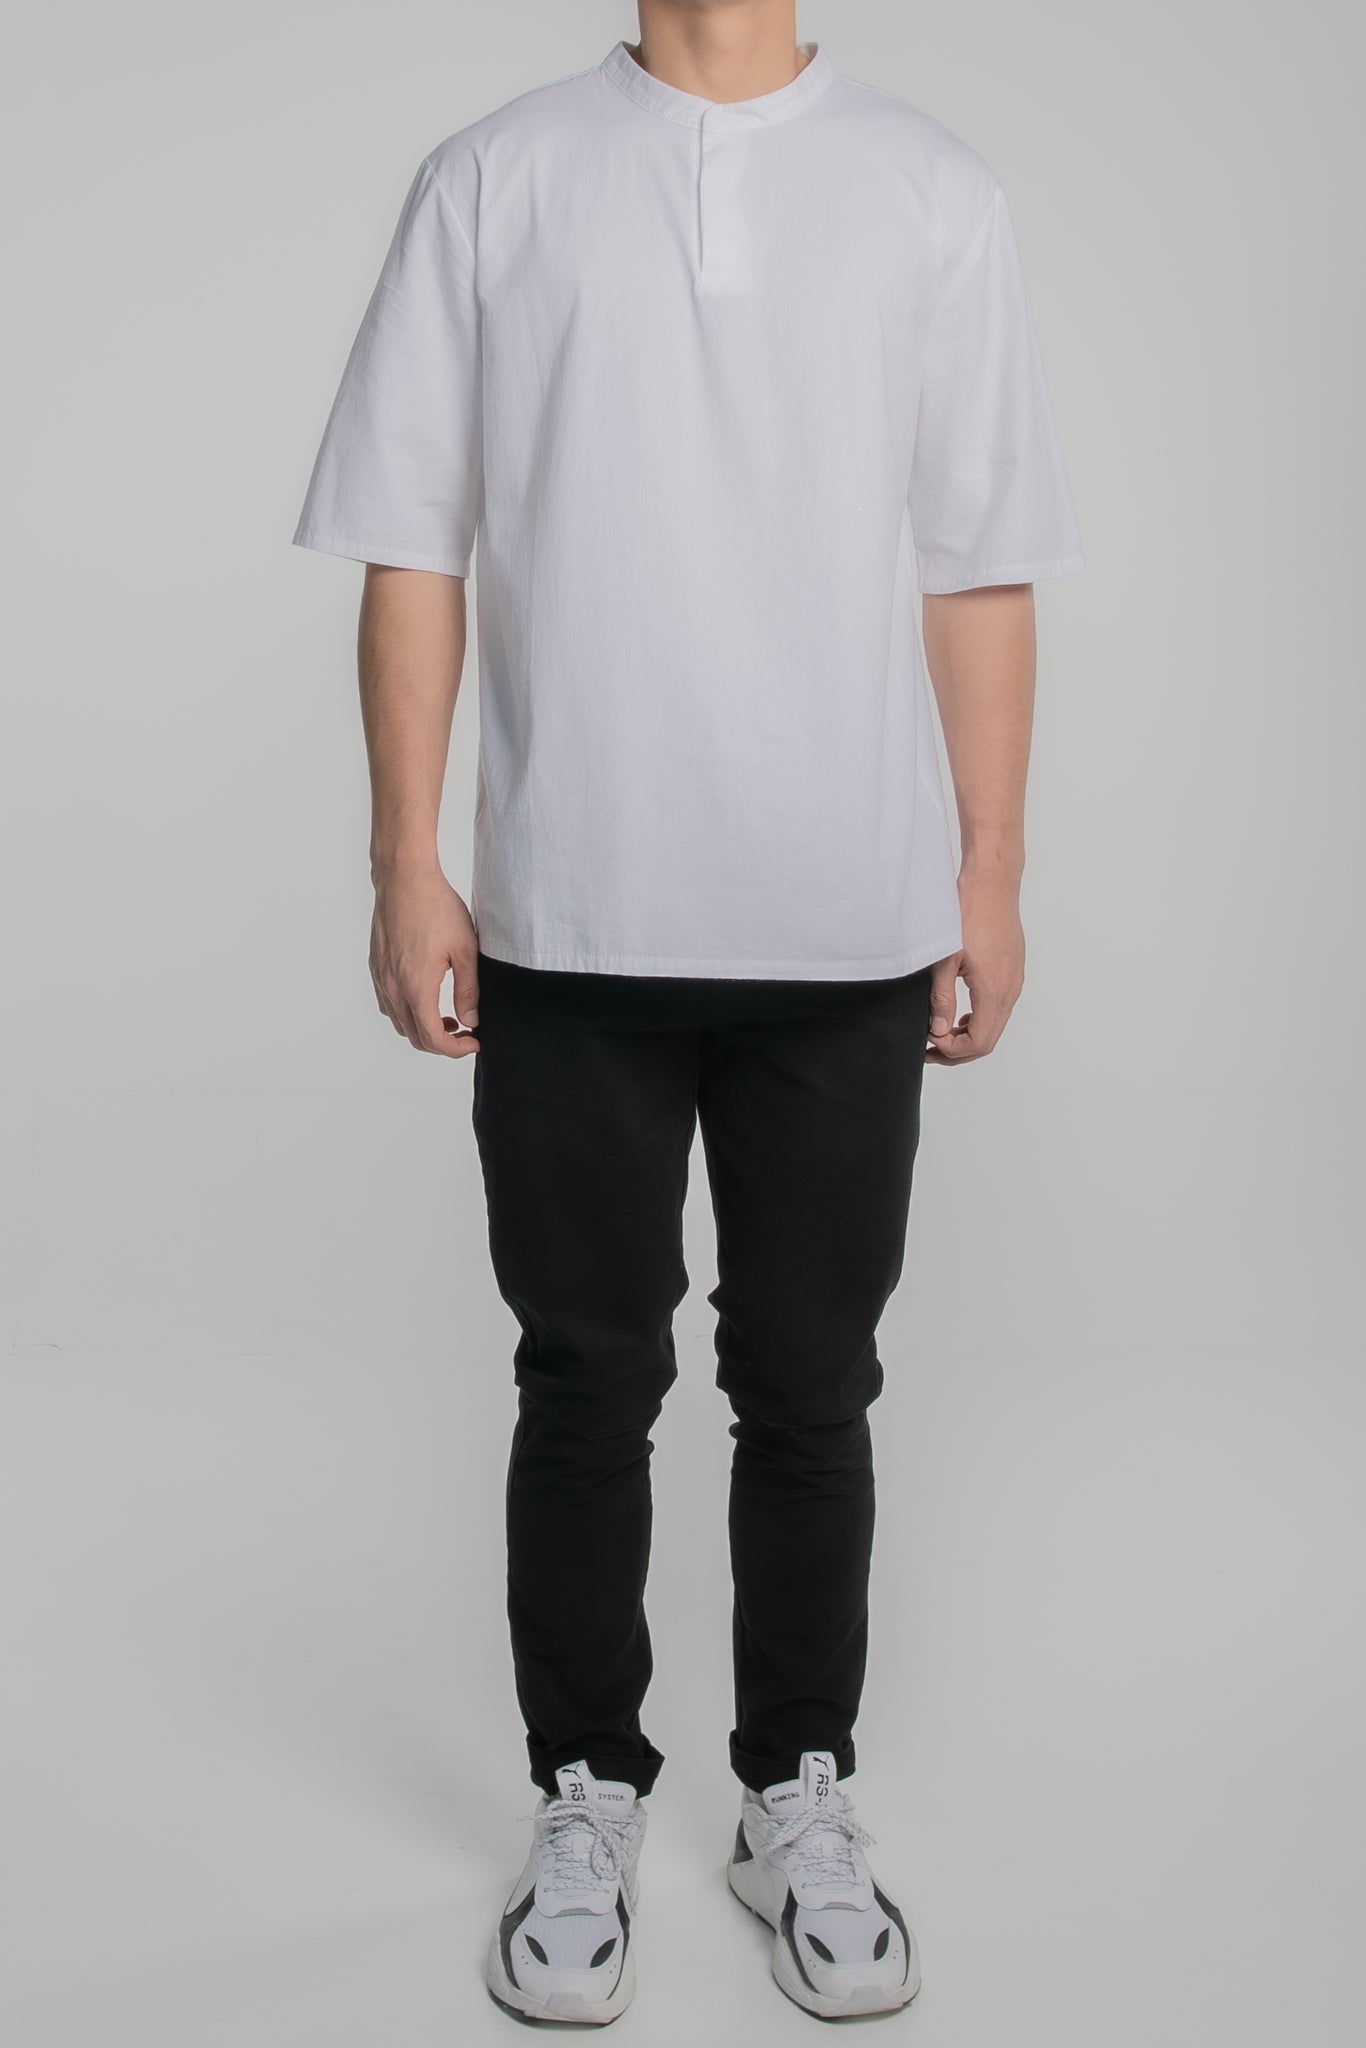 Mandarin Collar Short Sleeve Shirt (White)